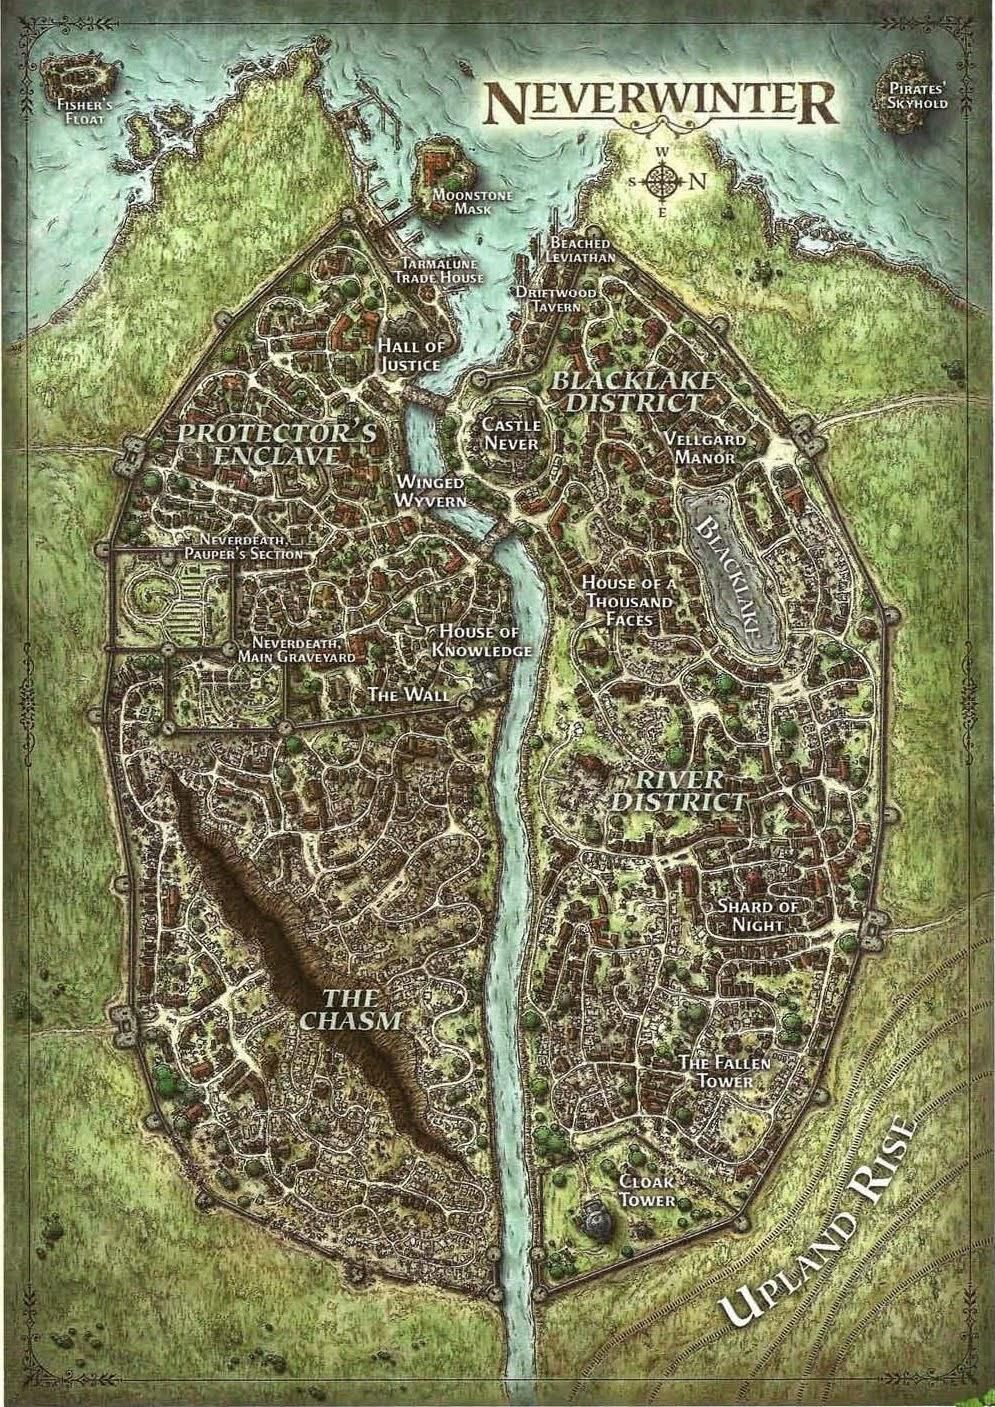 Map Of The City Of Neverwinter In Toril, Released By